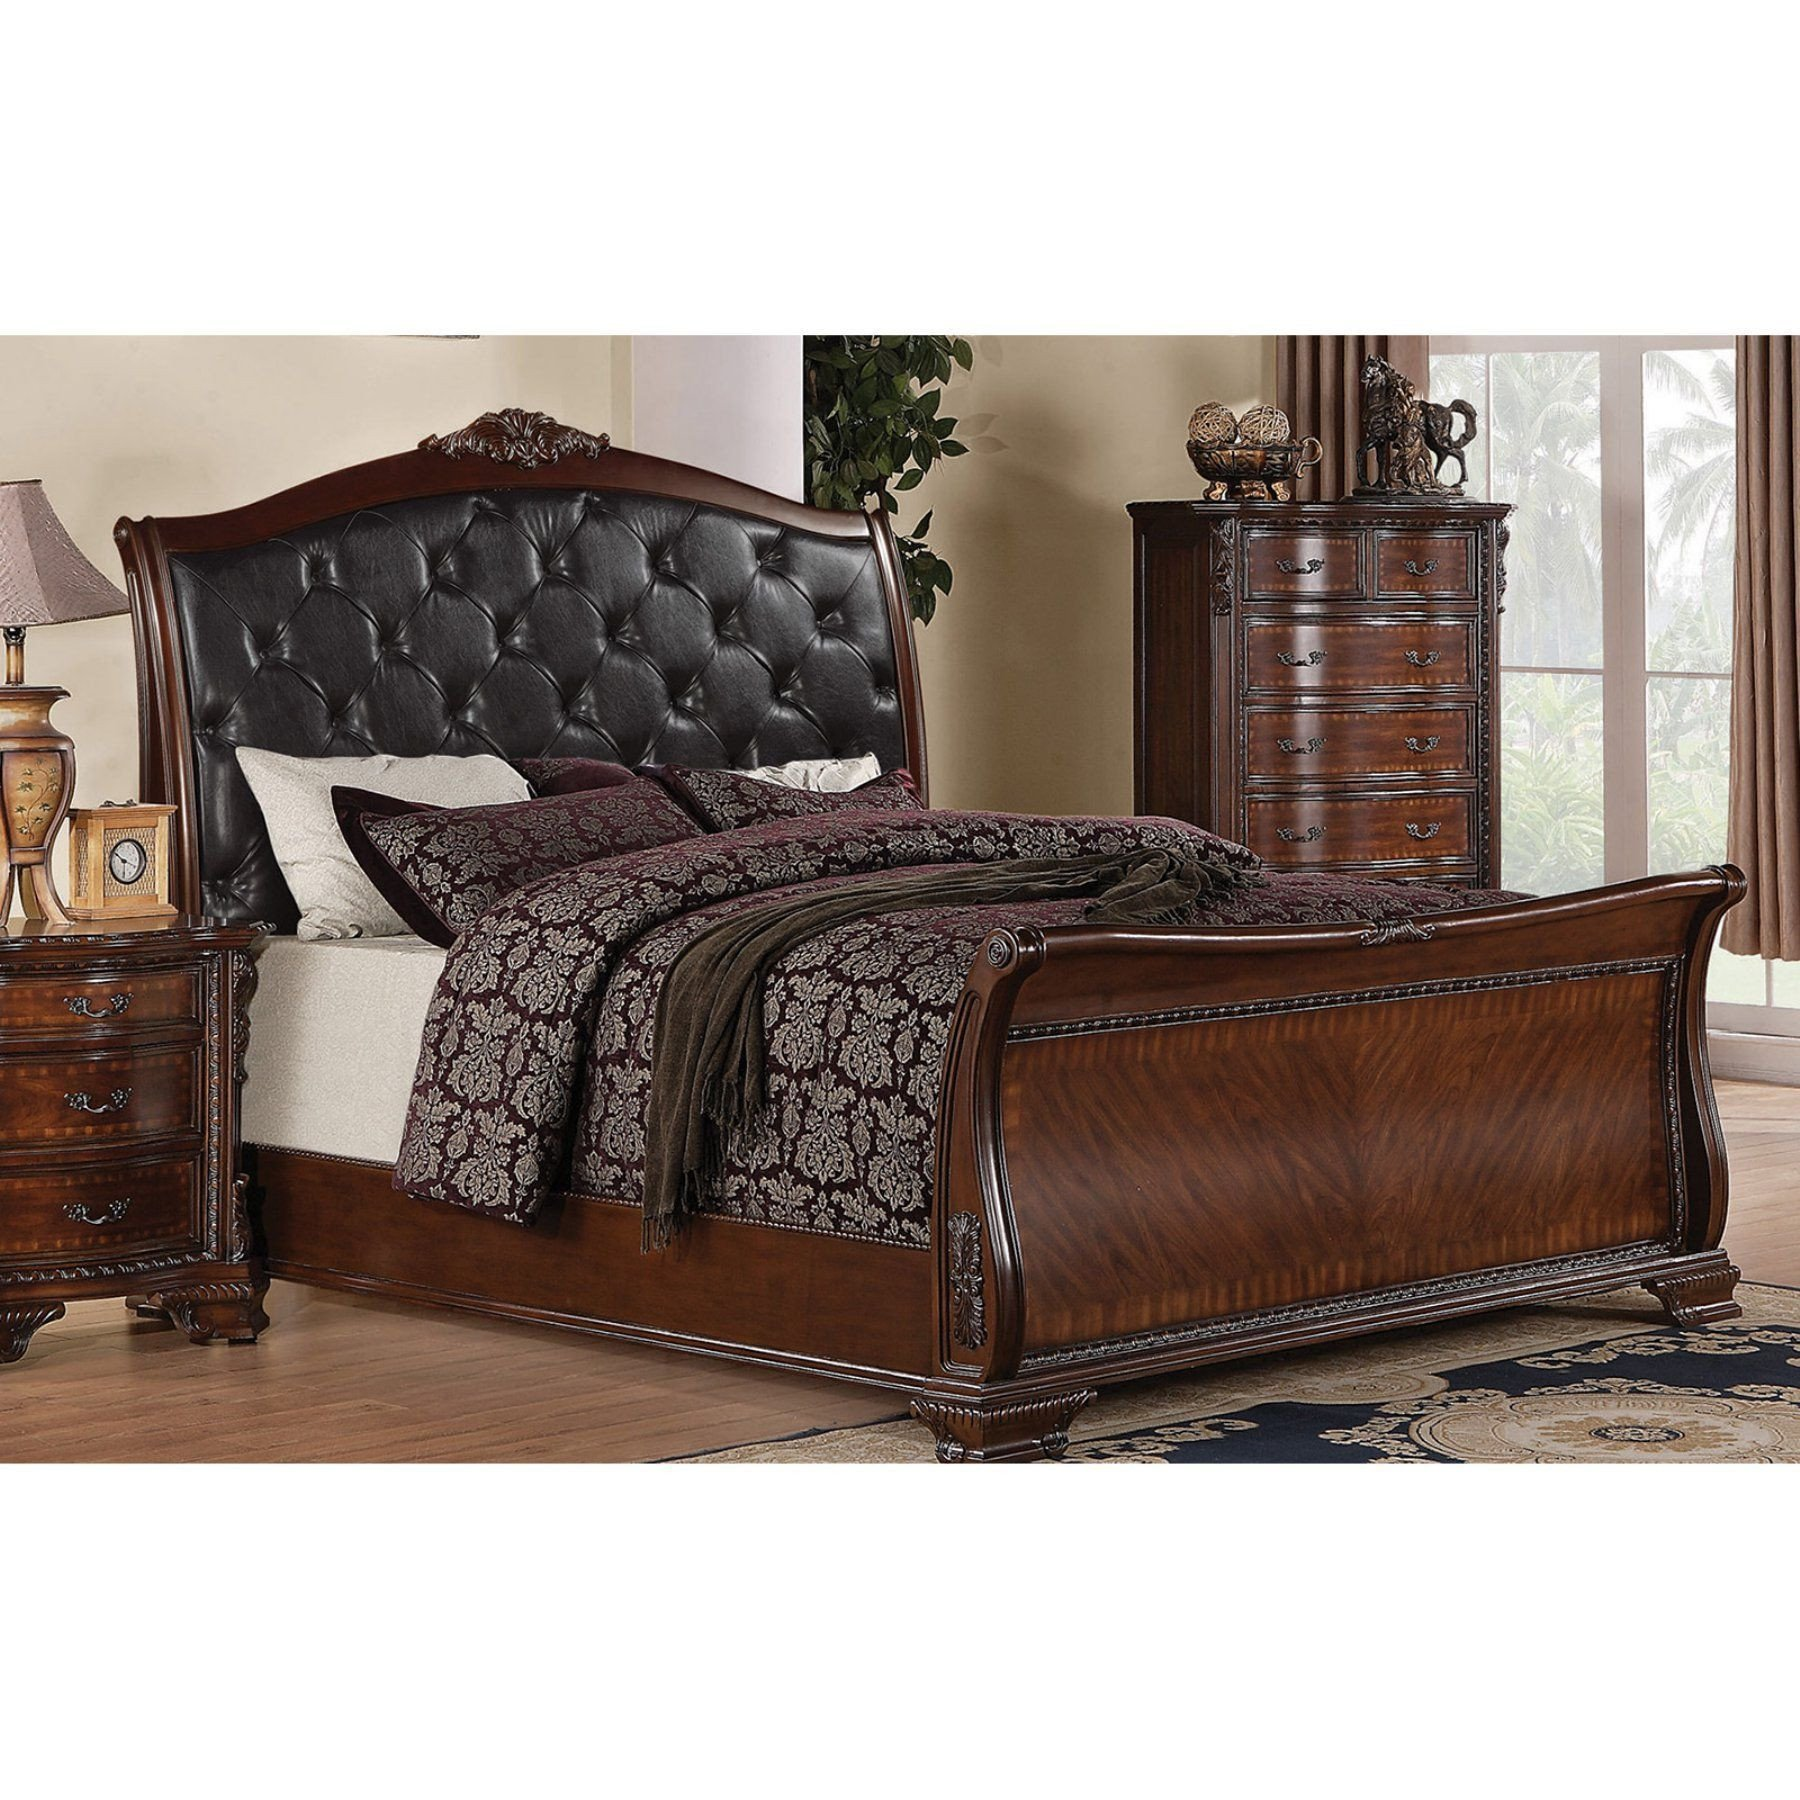 San Mateo Bedroom Set Luxury Coaster Furniture Maddison Tufted Upholstered Sleigh Bed